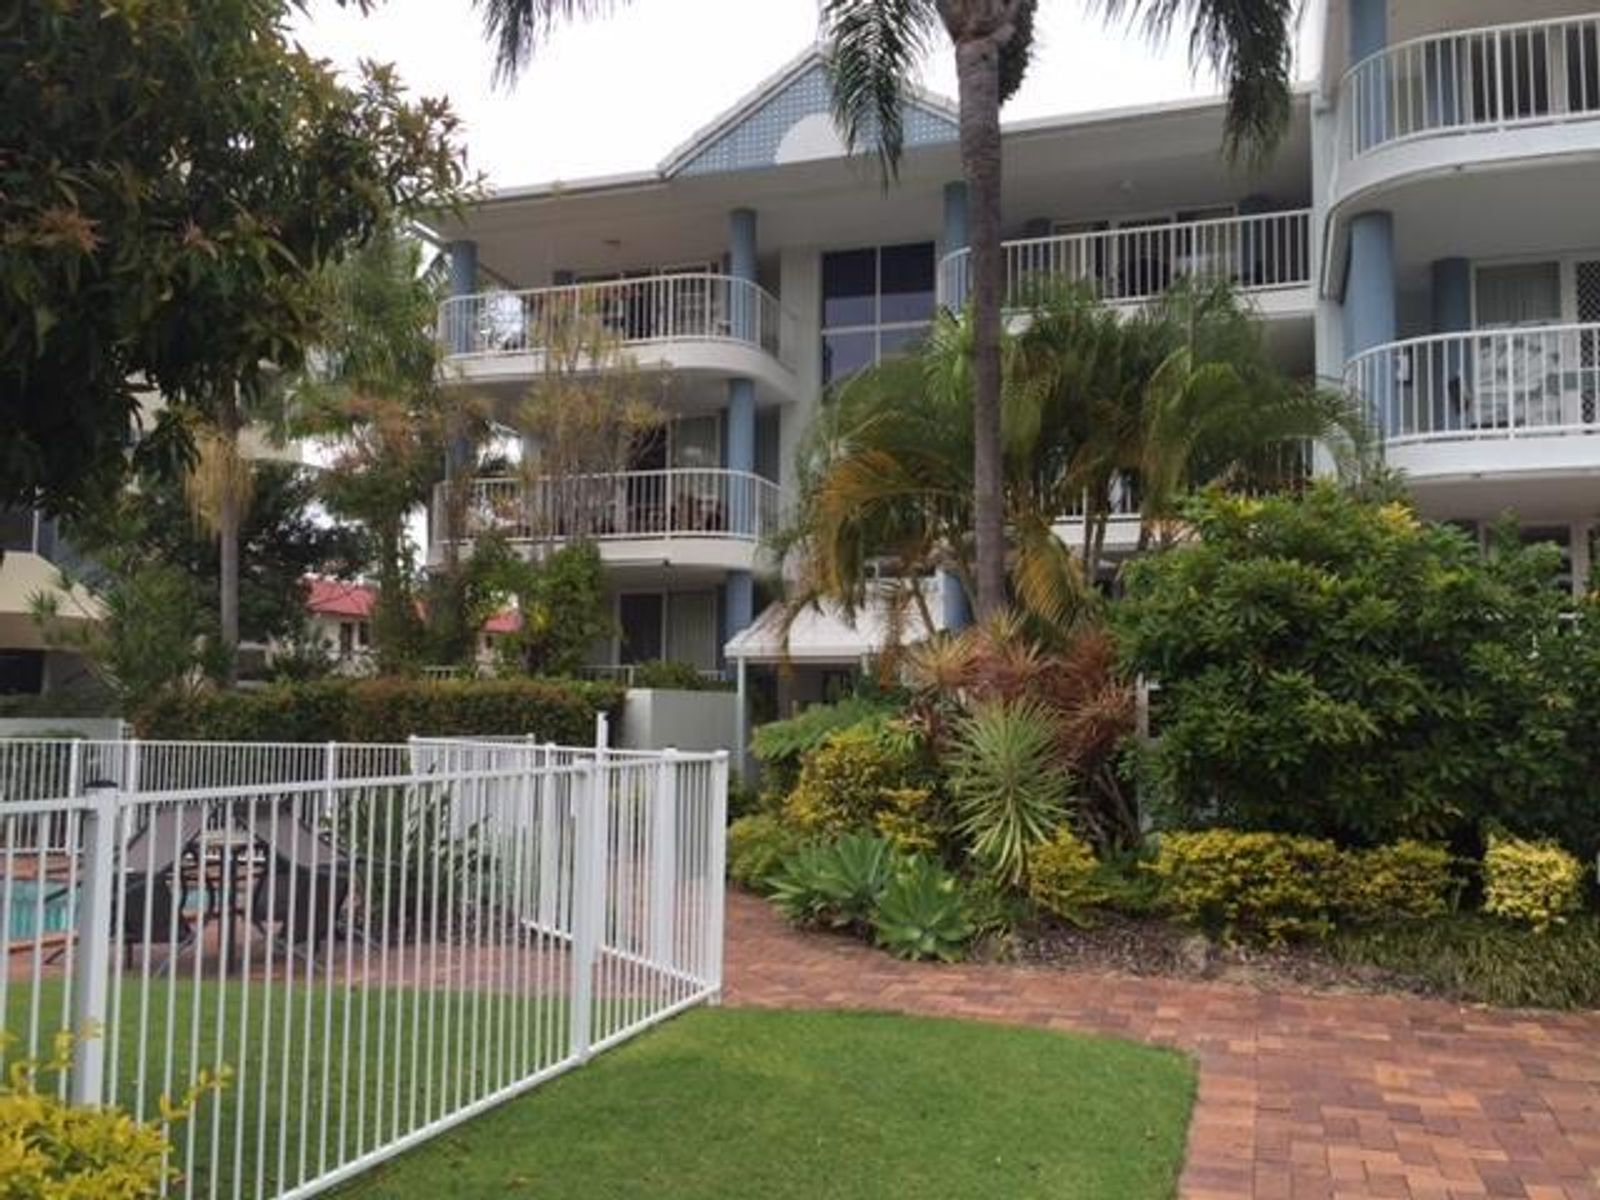 10/34-36 Chelsea Avenue, Broadbeach, QLD 4218